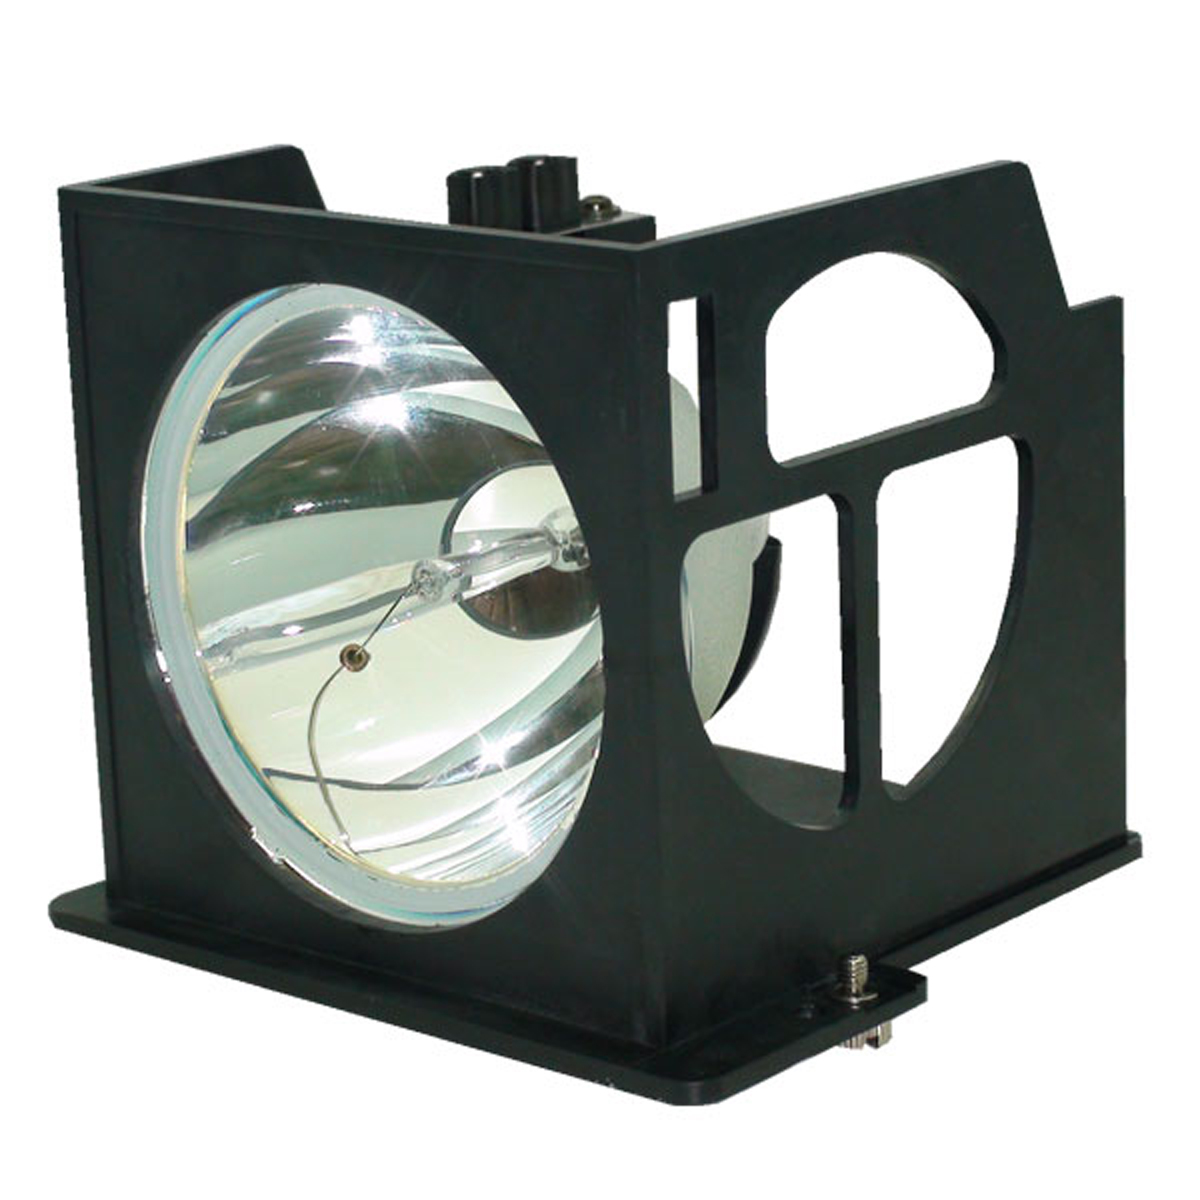 Osram Neolux Lamp Housing For Gateway GTW-R56M103 / GTWR56M103 Projection TV